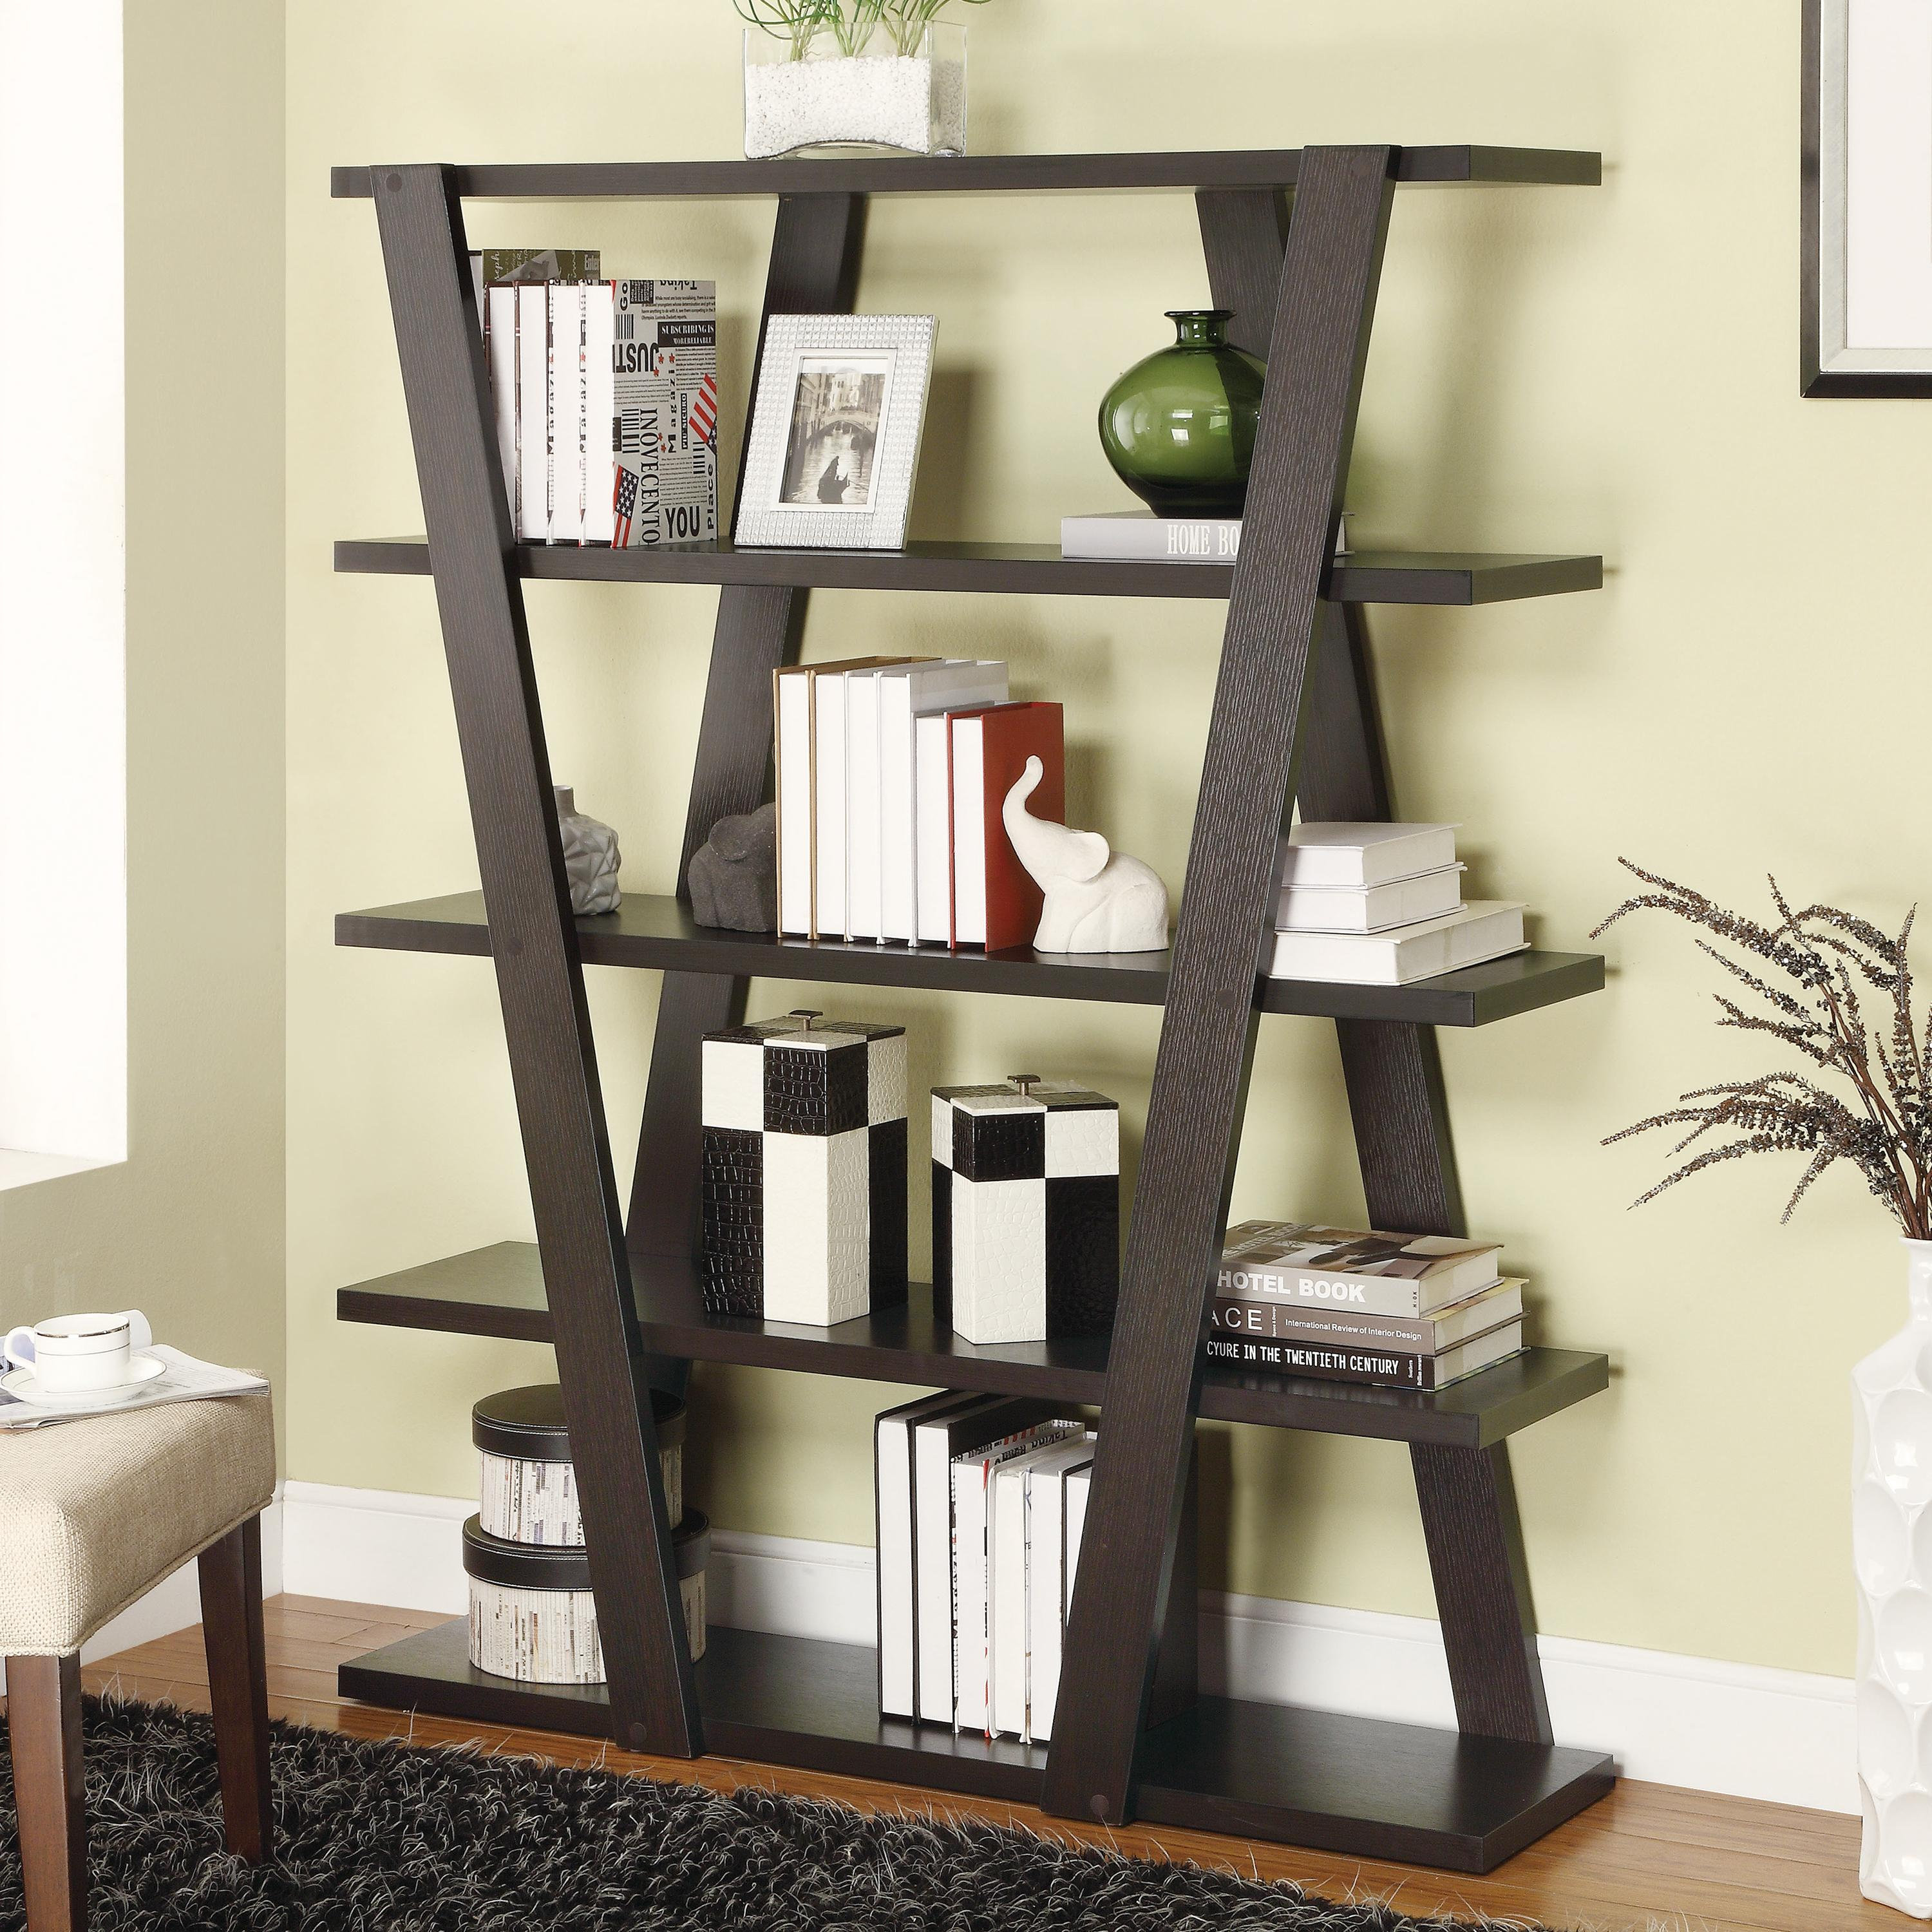 Modern Bookshelf With Inverted Supports & Open Shelves - Bookcases